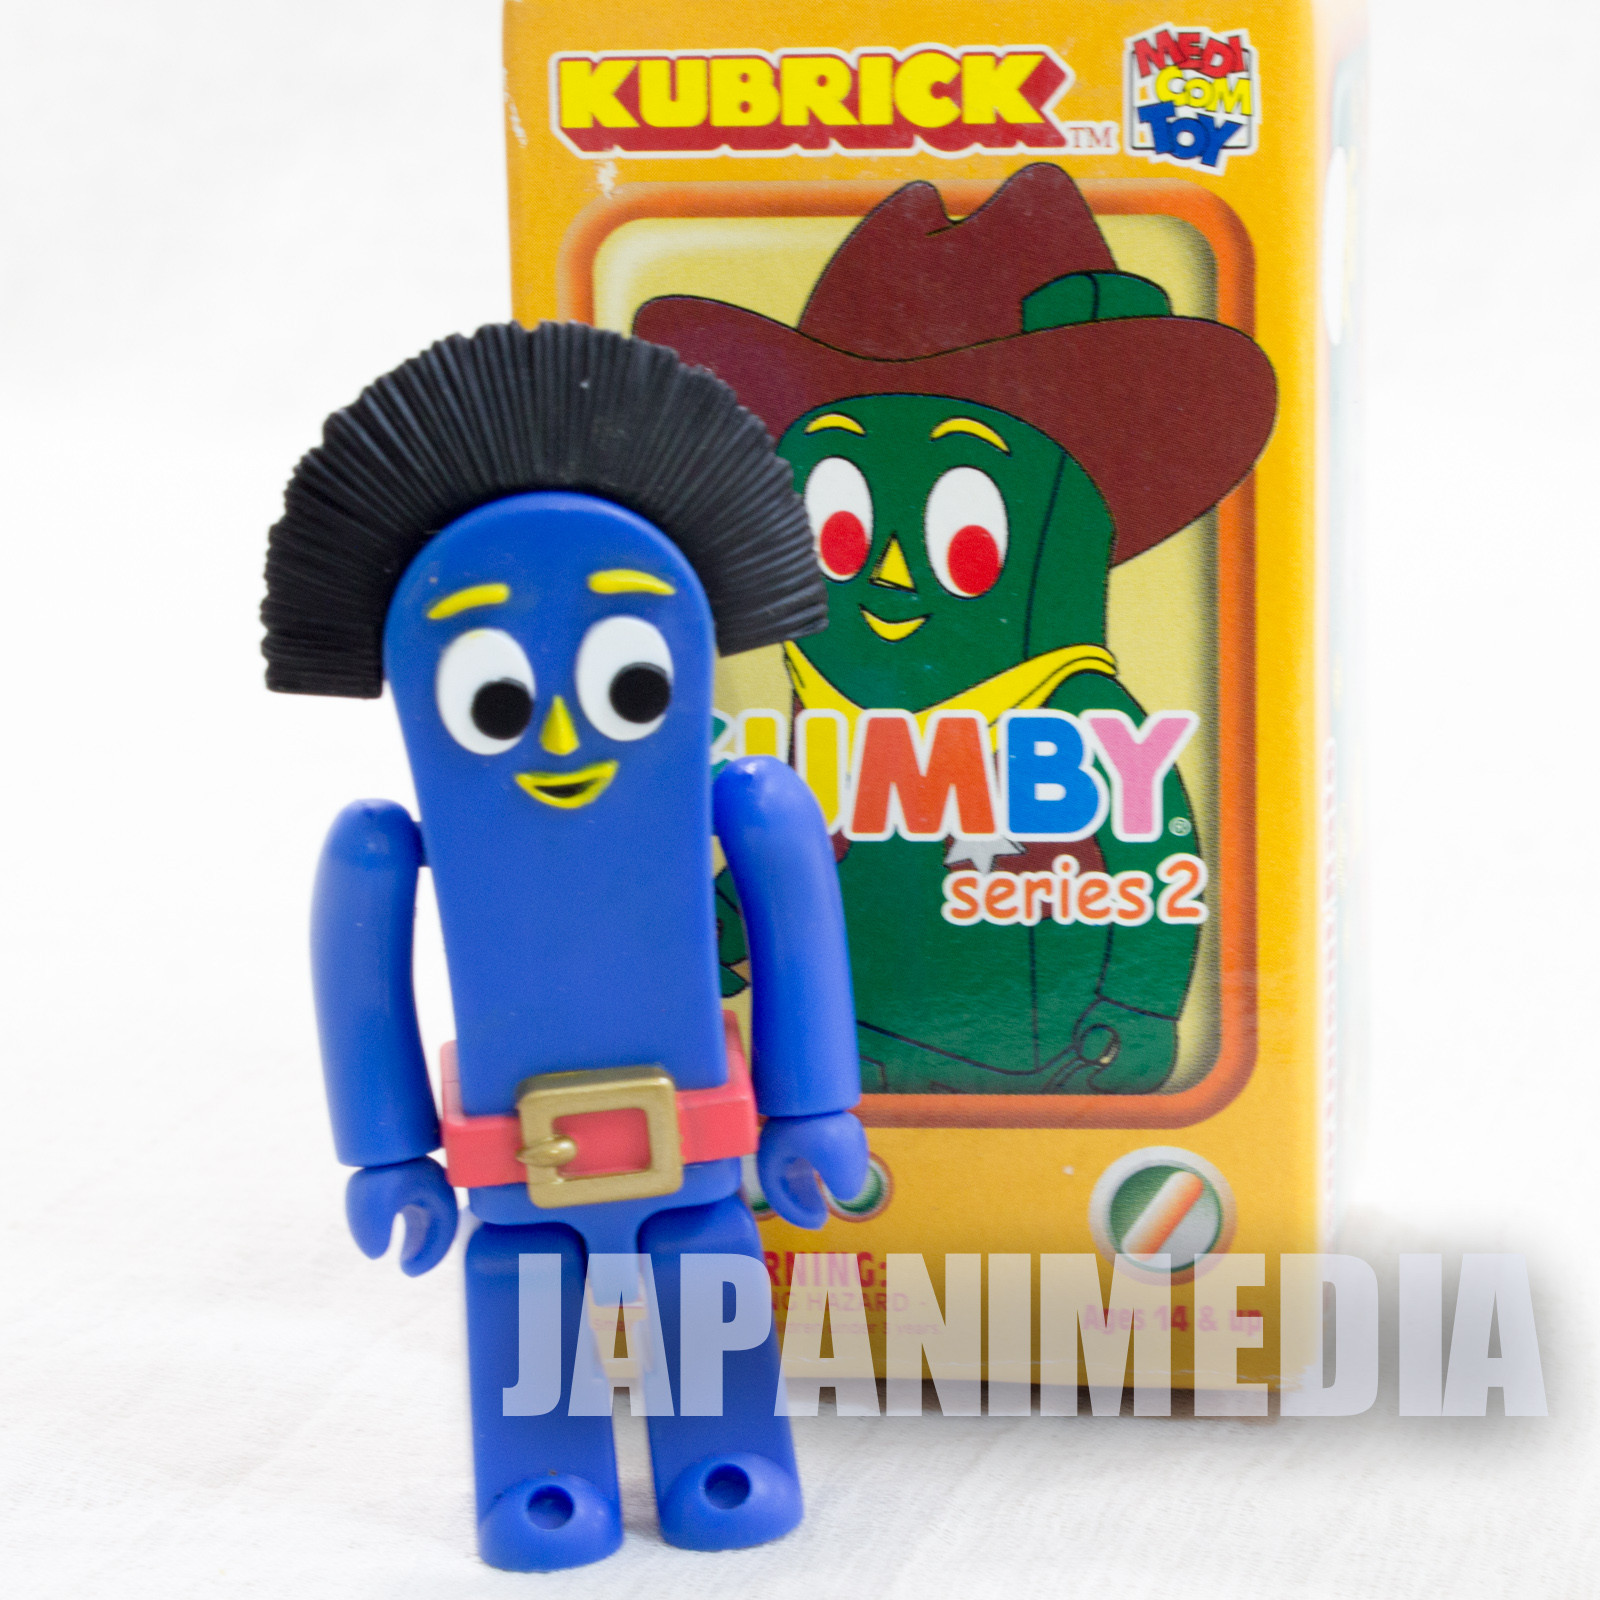 GUMBY Thinbuckle Figure series 2 Kubrick Medicom Toy JAPAN